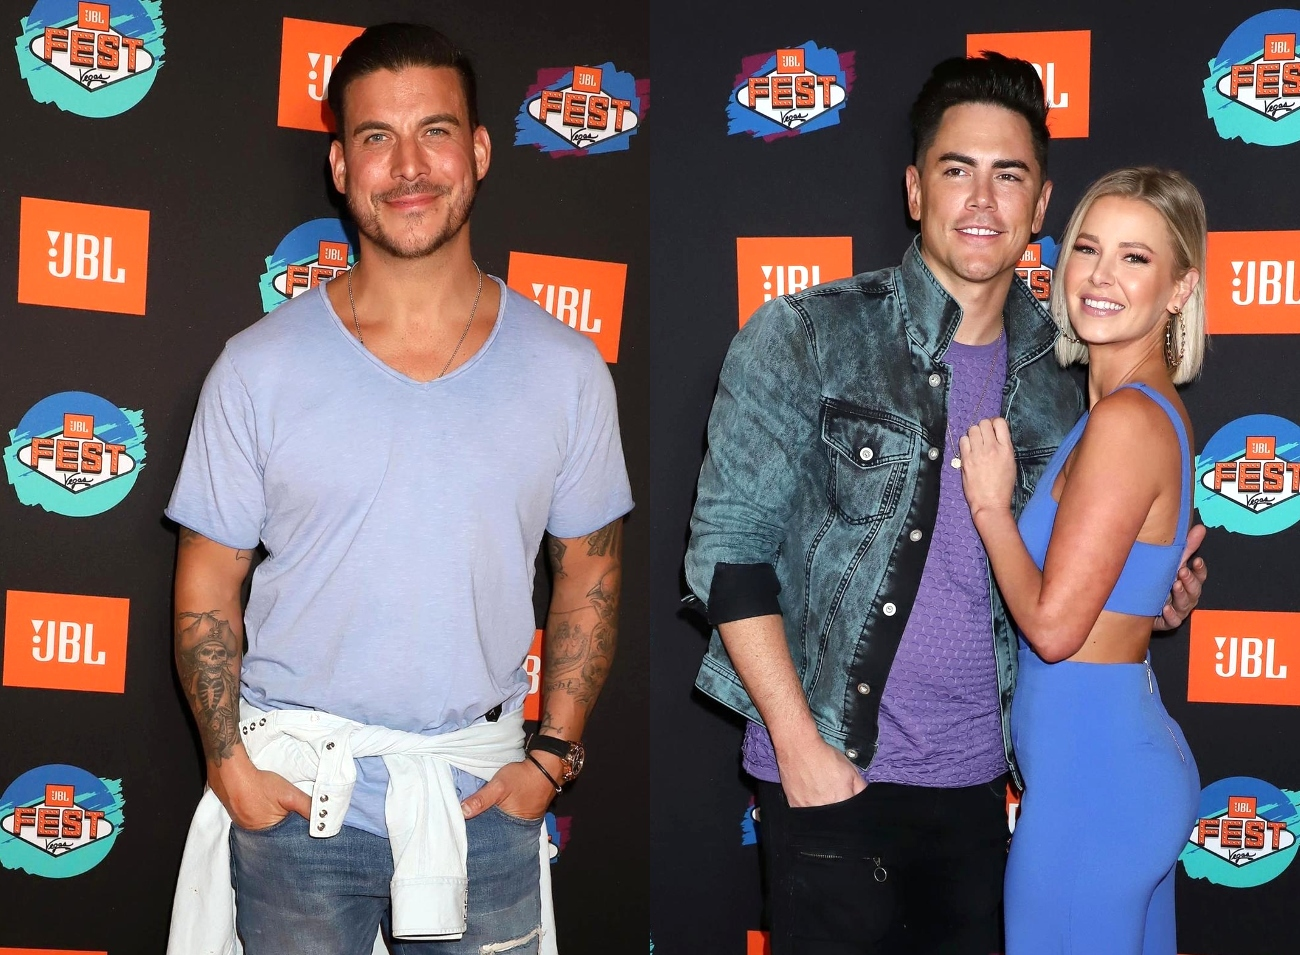 Vanderpump Rules' Jax Taylor Shades Tom Sandoval and Ariana Madix